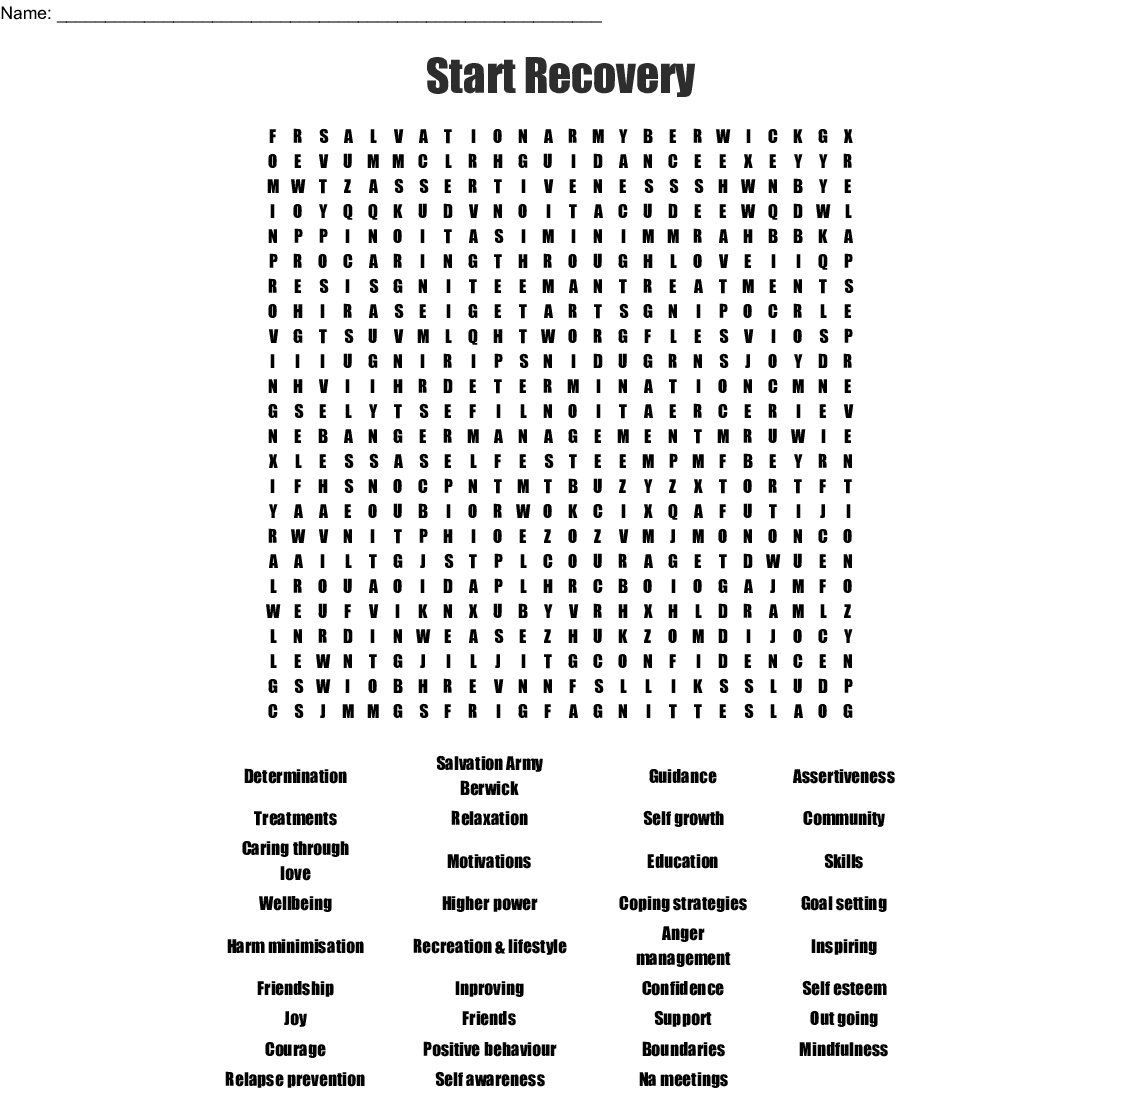 Start Recovery Word Search